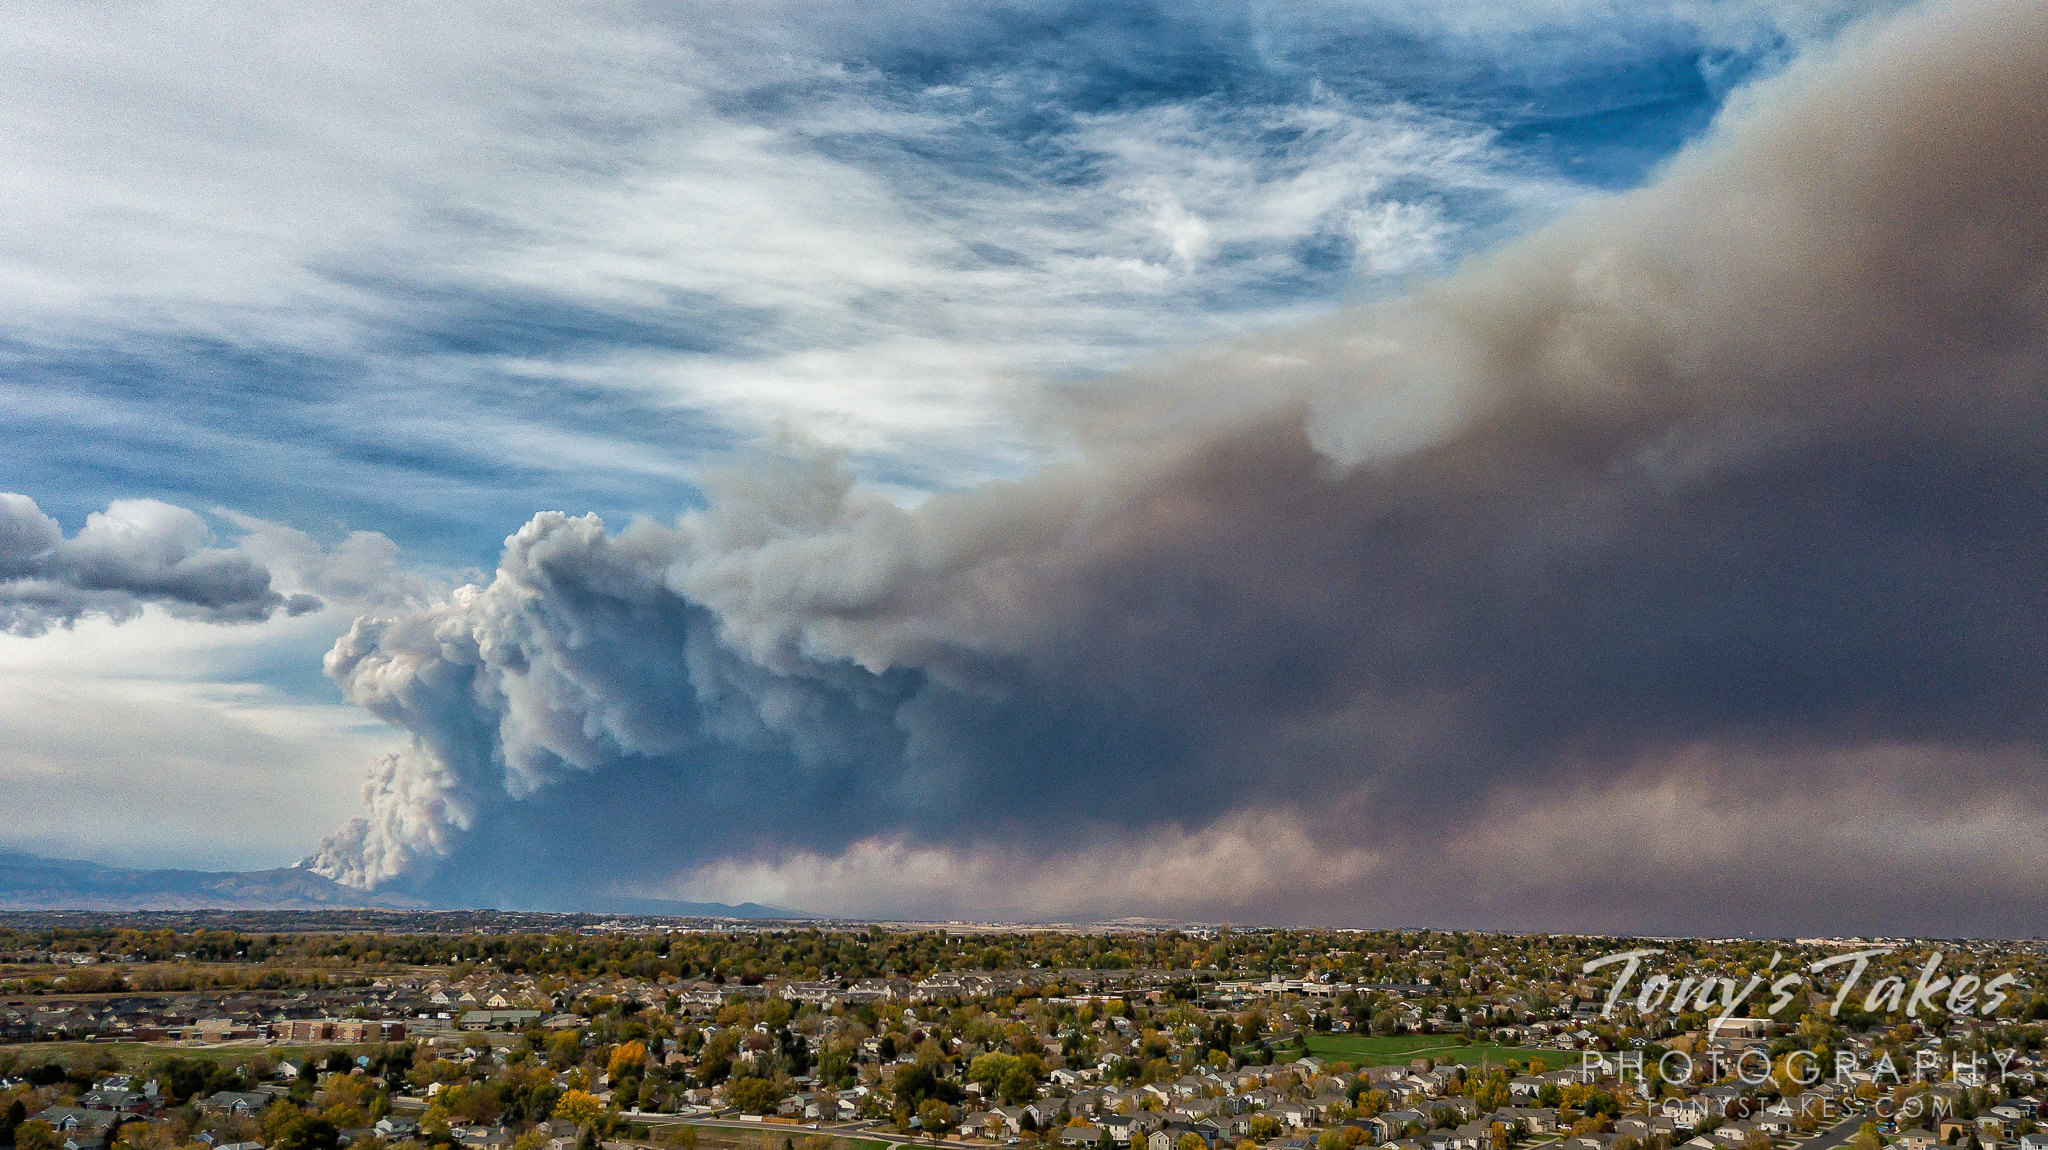 The CalWood Fire north of Boulder, Colorado is seen in this drone image taken soon after the fire erupted. (© Tony's Takes)